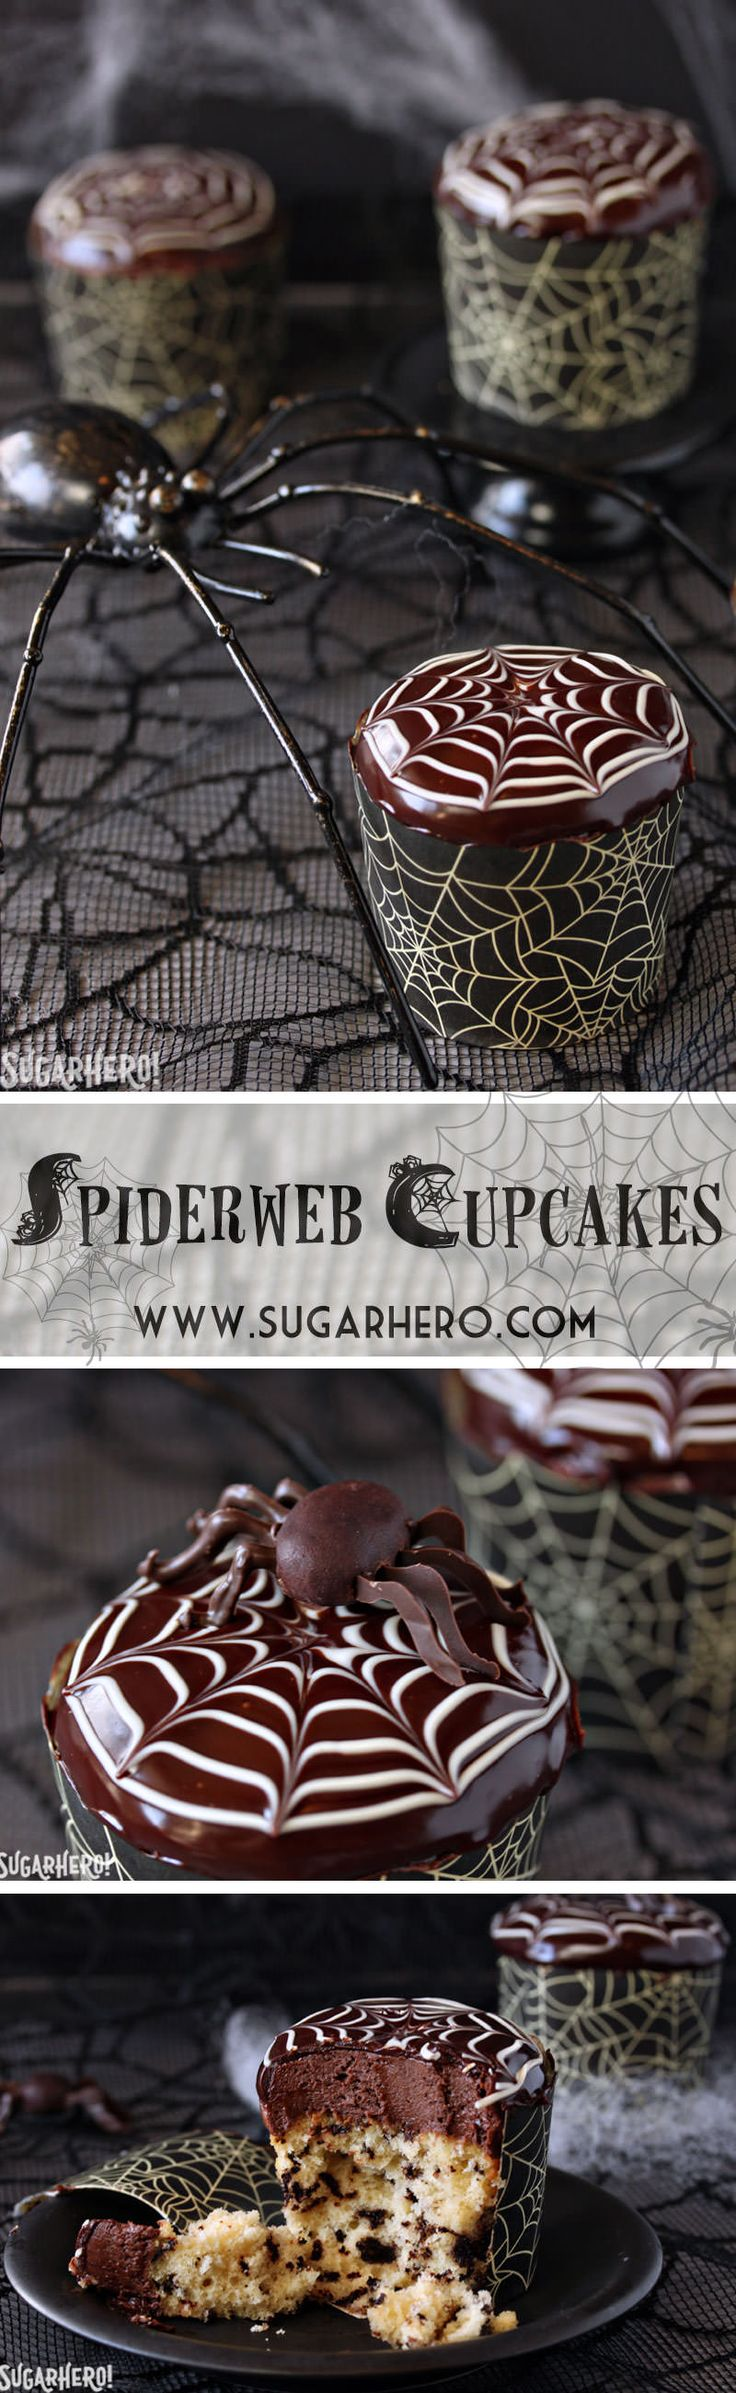 Spiderweb Cupcakes are a cute and easy Halloween dessert! Learn how to make these cupcakes and the adorable chocolate spiders that go on top. | From SugarHero.com